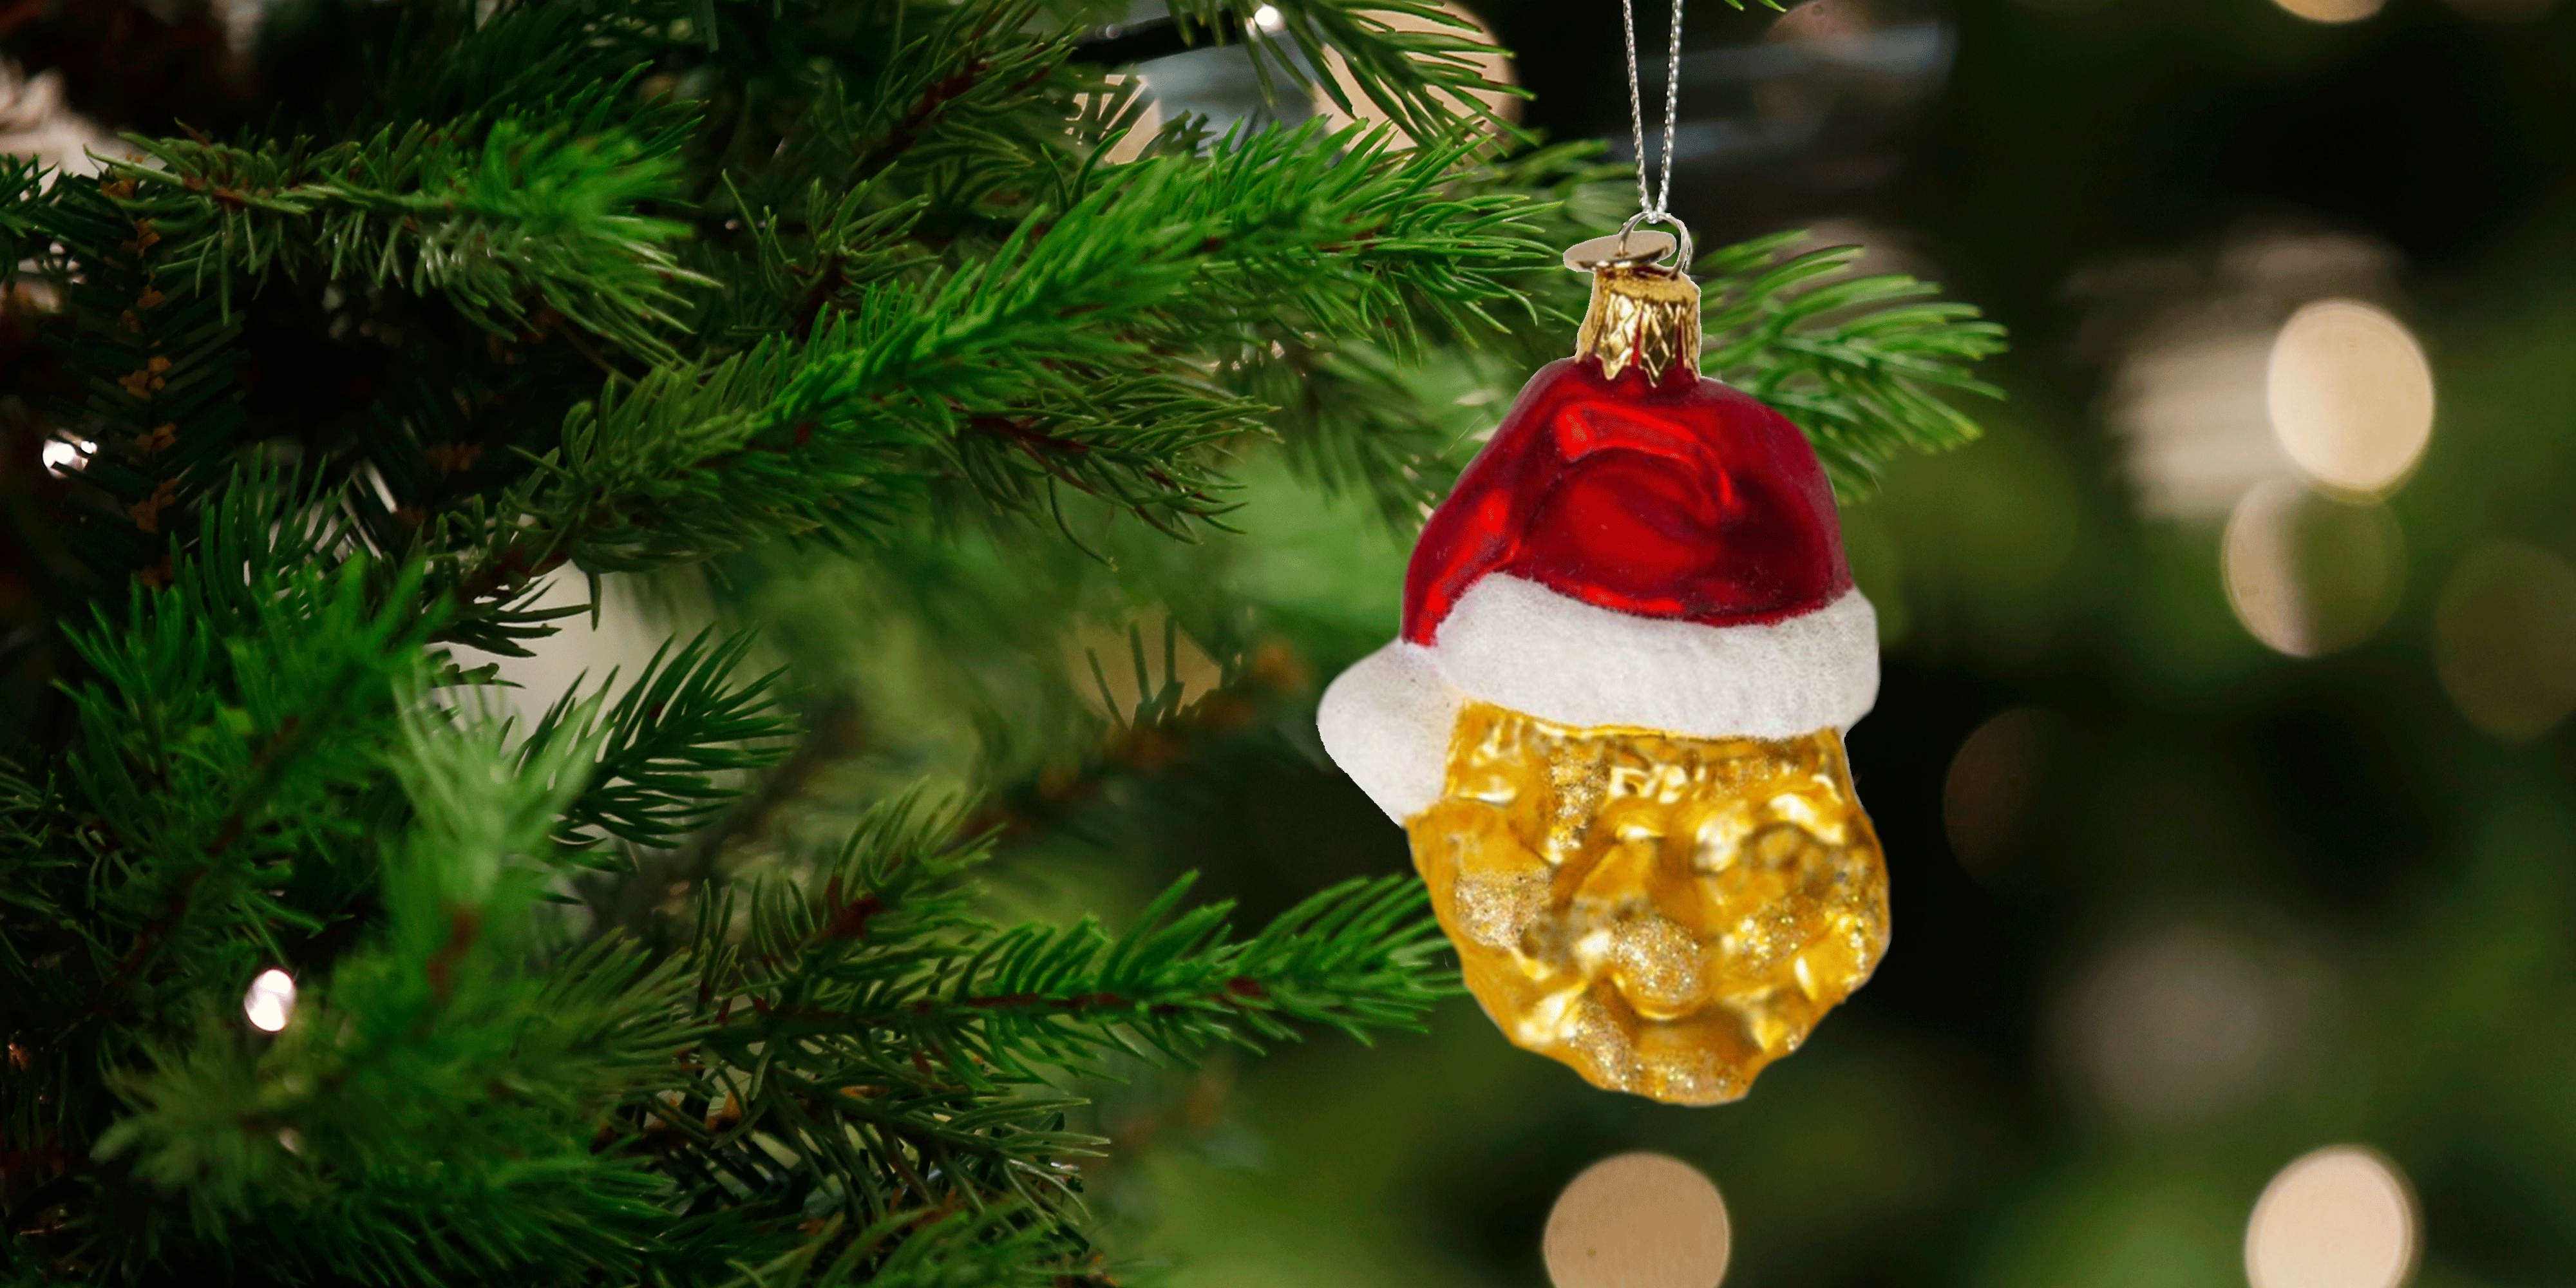 Mcdonalds Christmas Ornament.Mcdonald S Made Limited Edition Chicken Mcnugget String Lights For